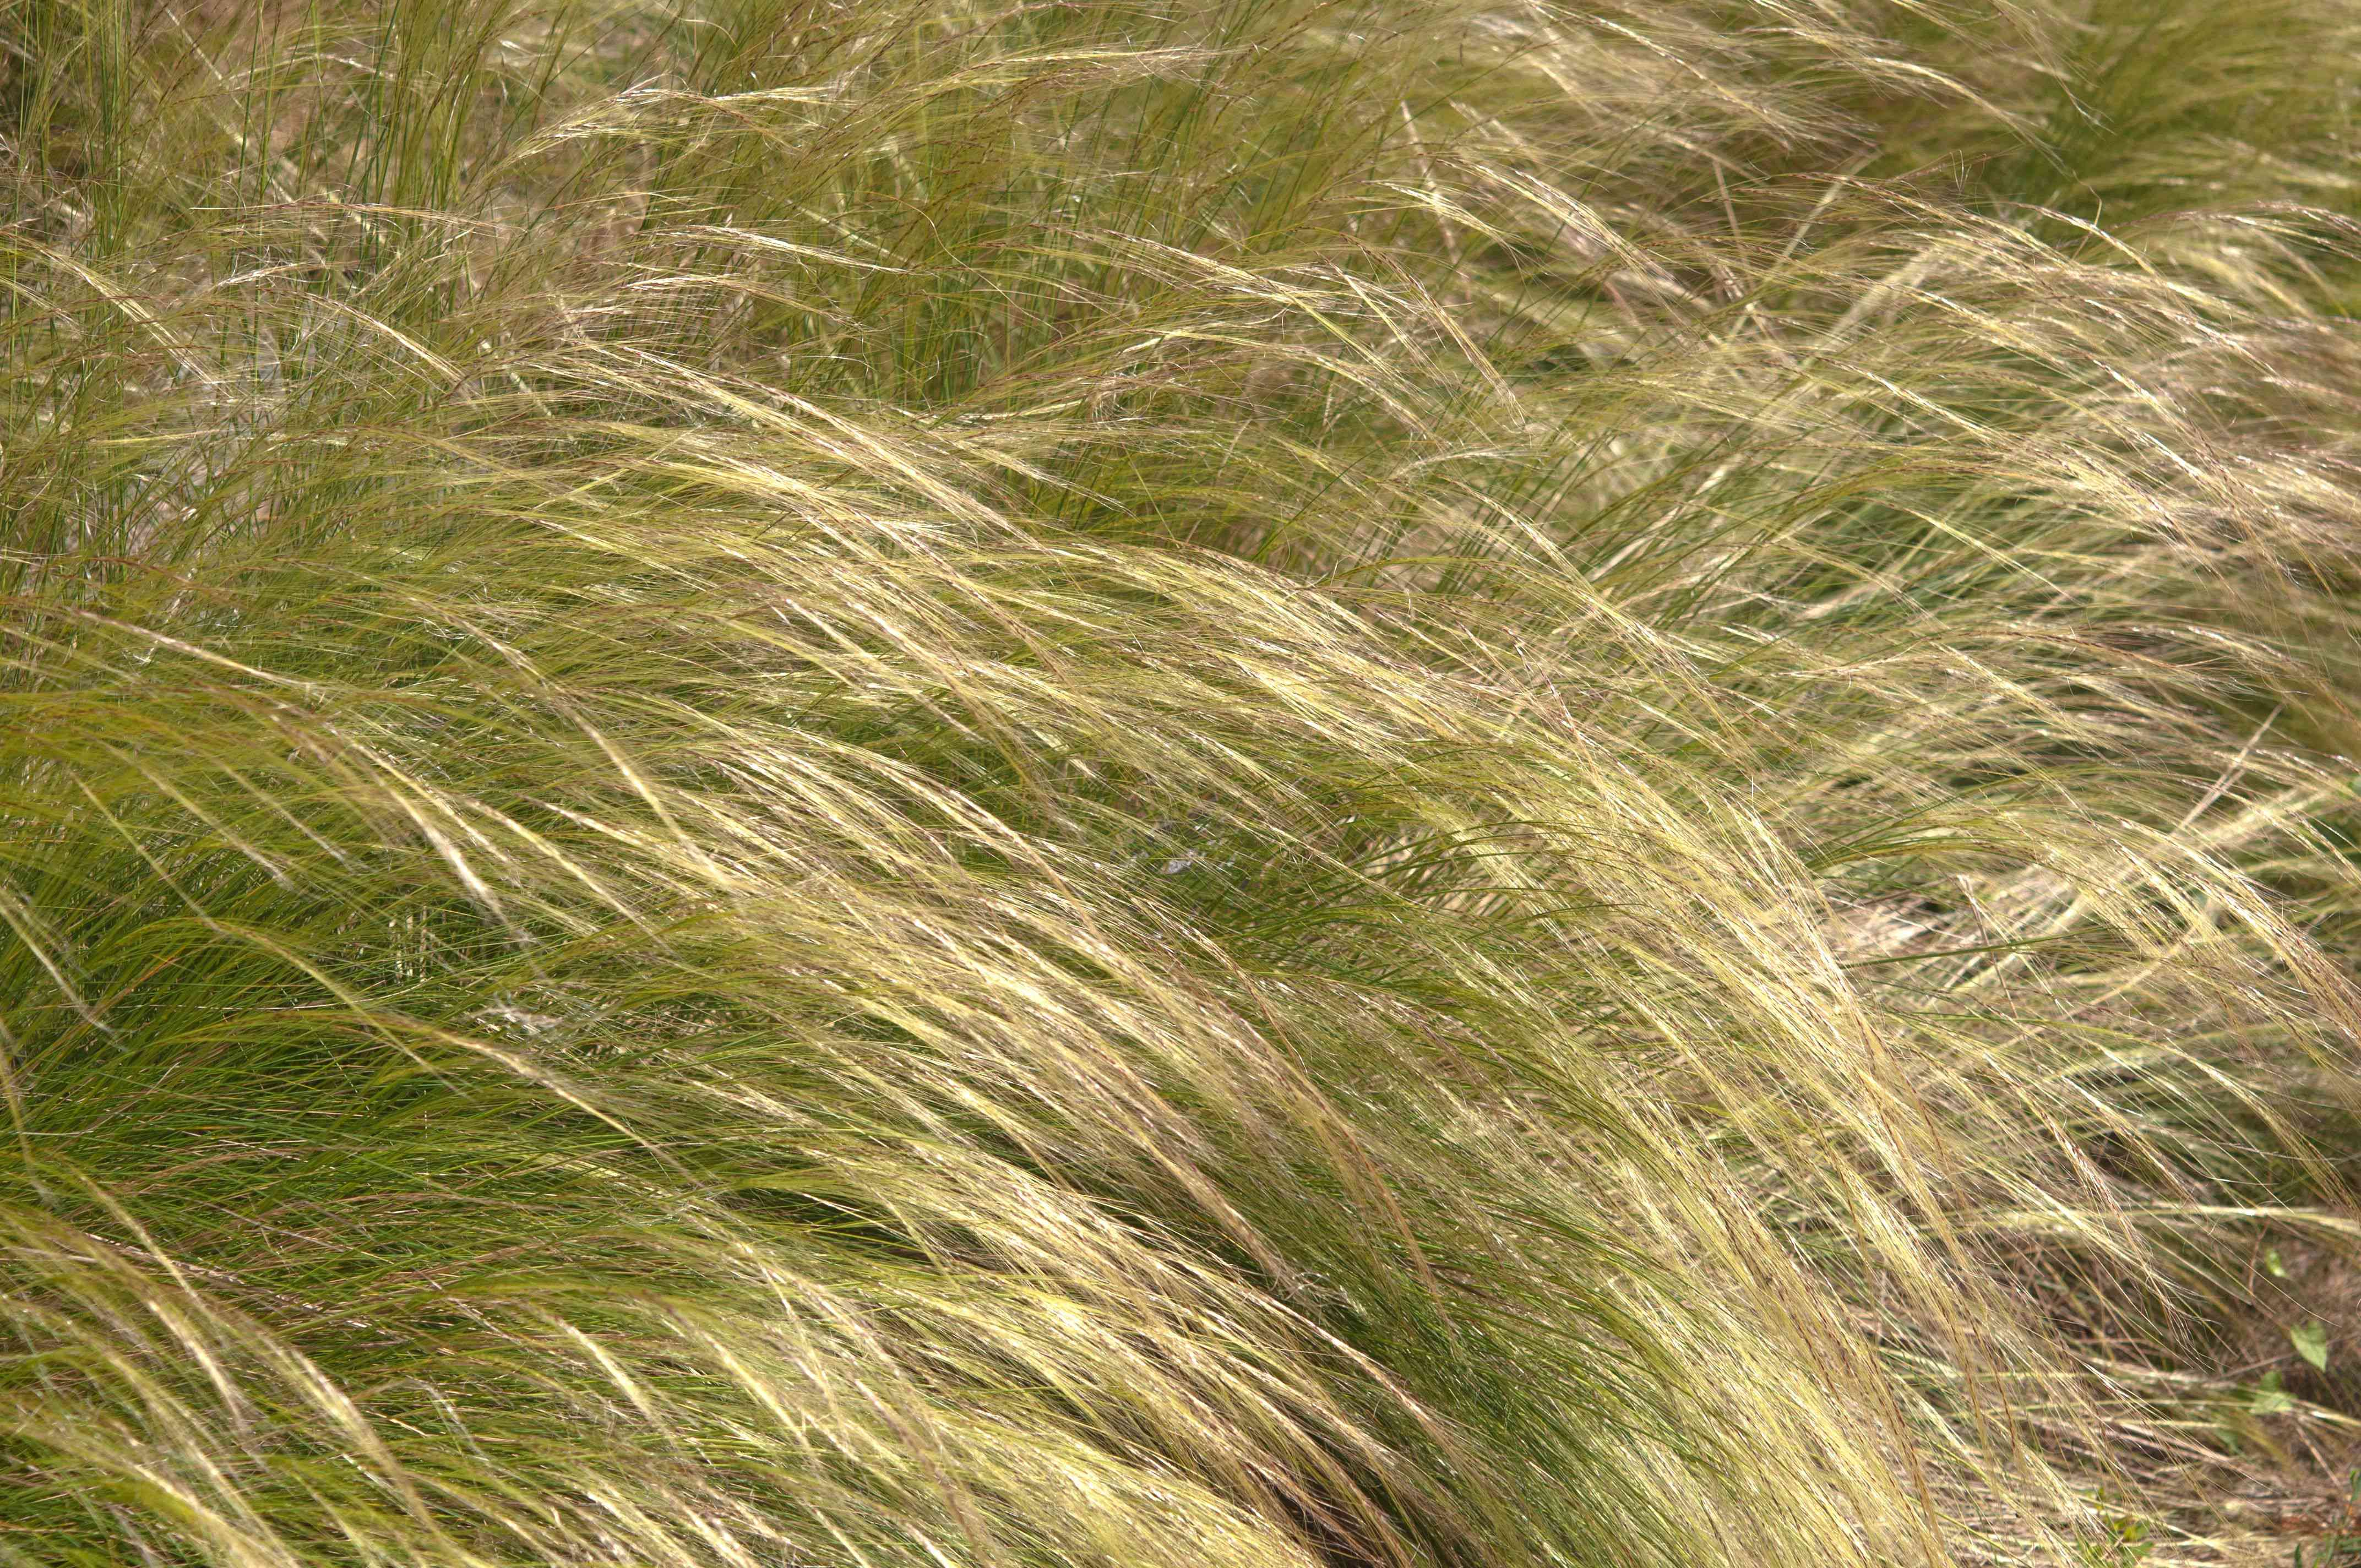 Mexican feather ornamental grass with tan feather-like leaf blades